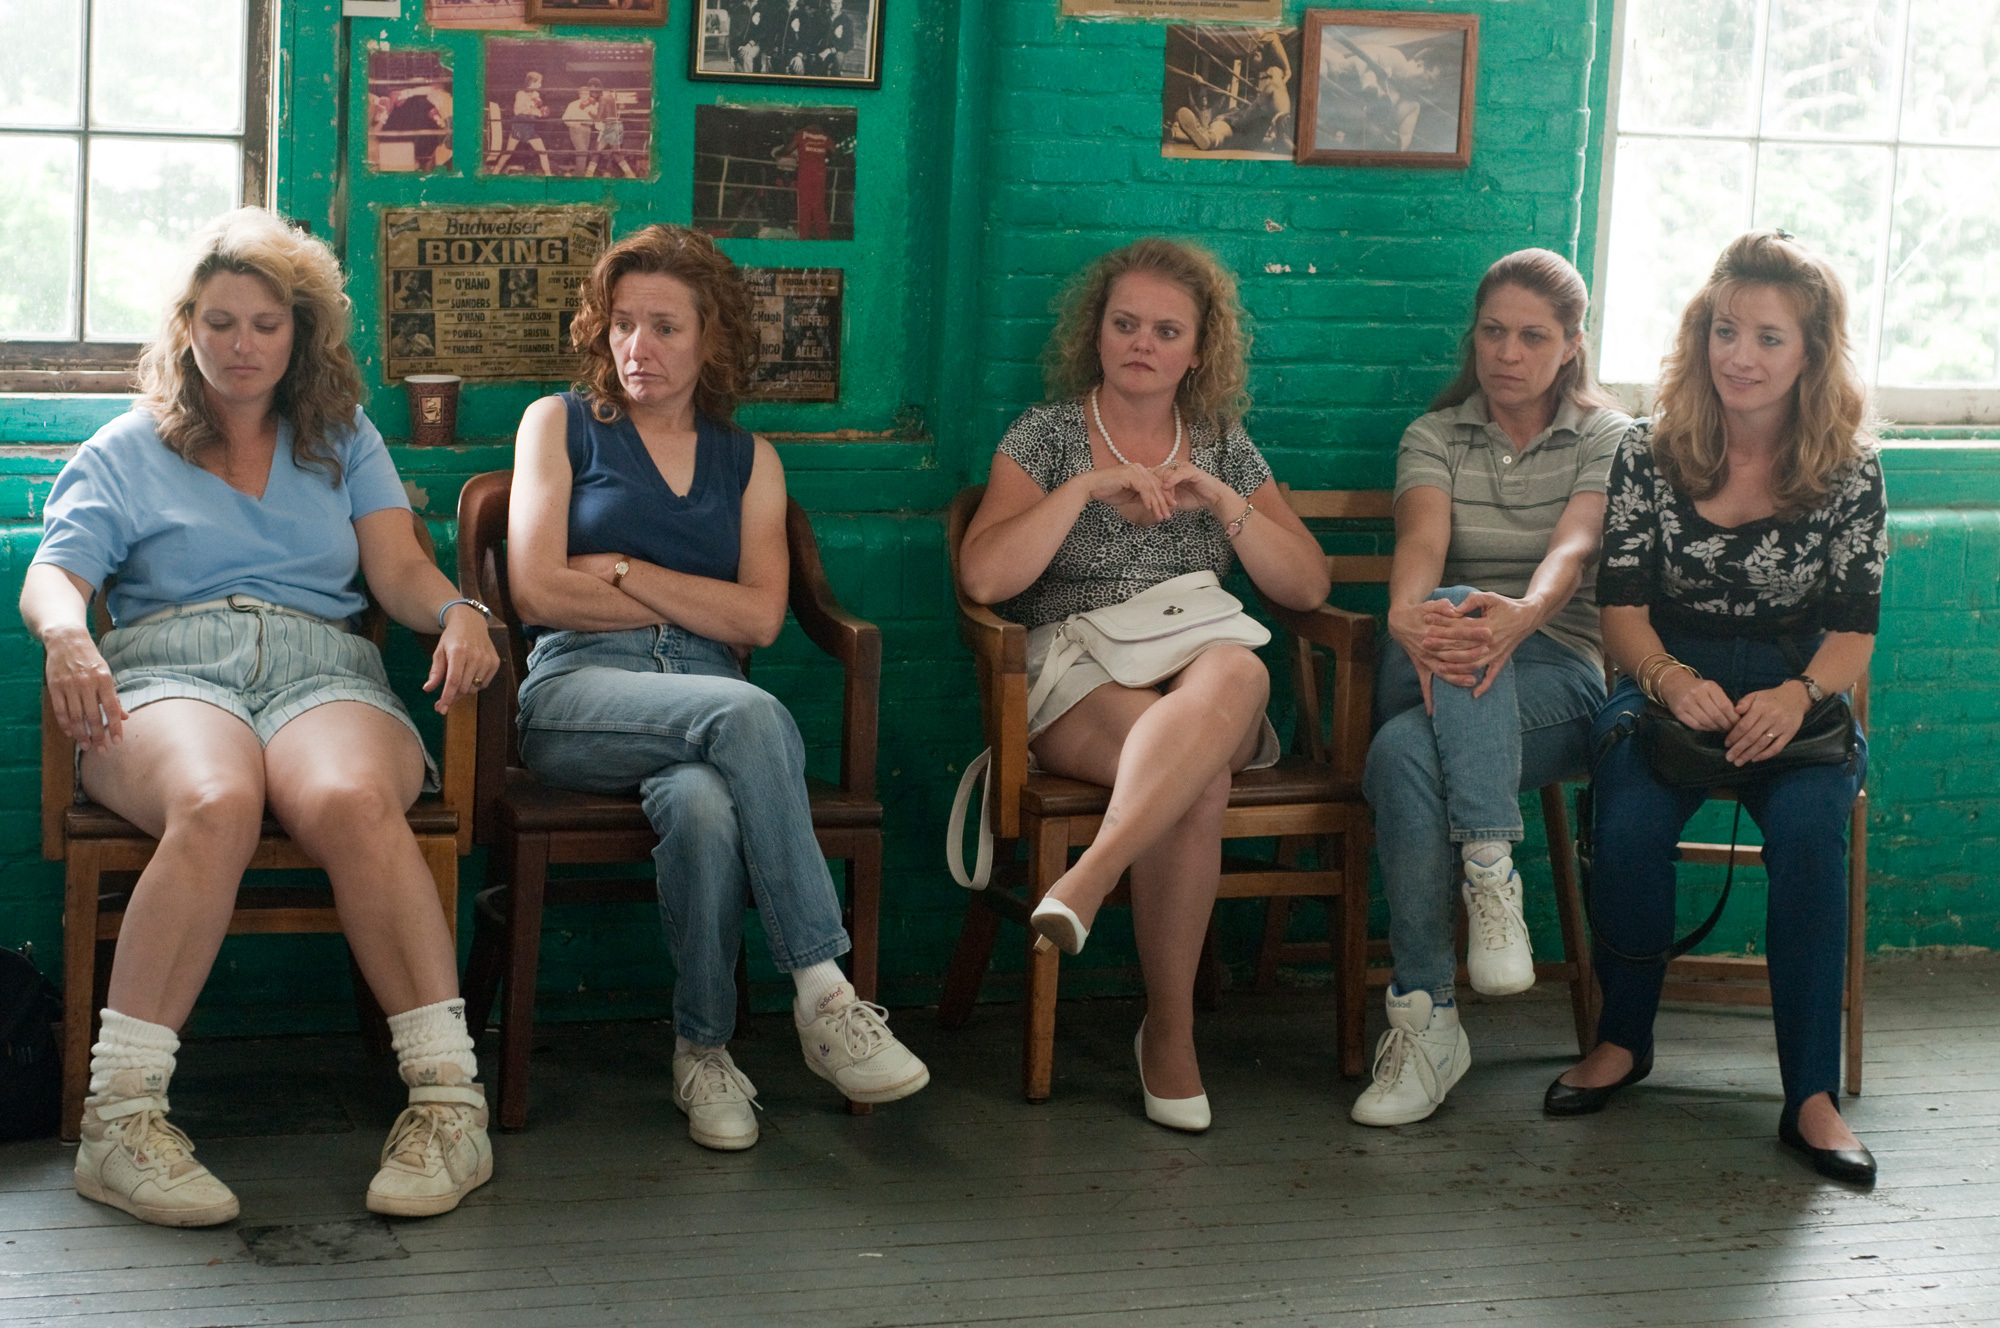 Jenna Lamia, Dendrie Taylor, Melissa McMeekin, Erica McDermott, and Kate B. O'Brien in The Fighter (2010)